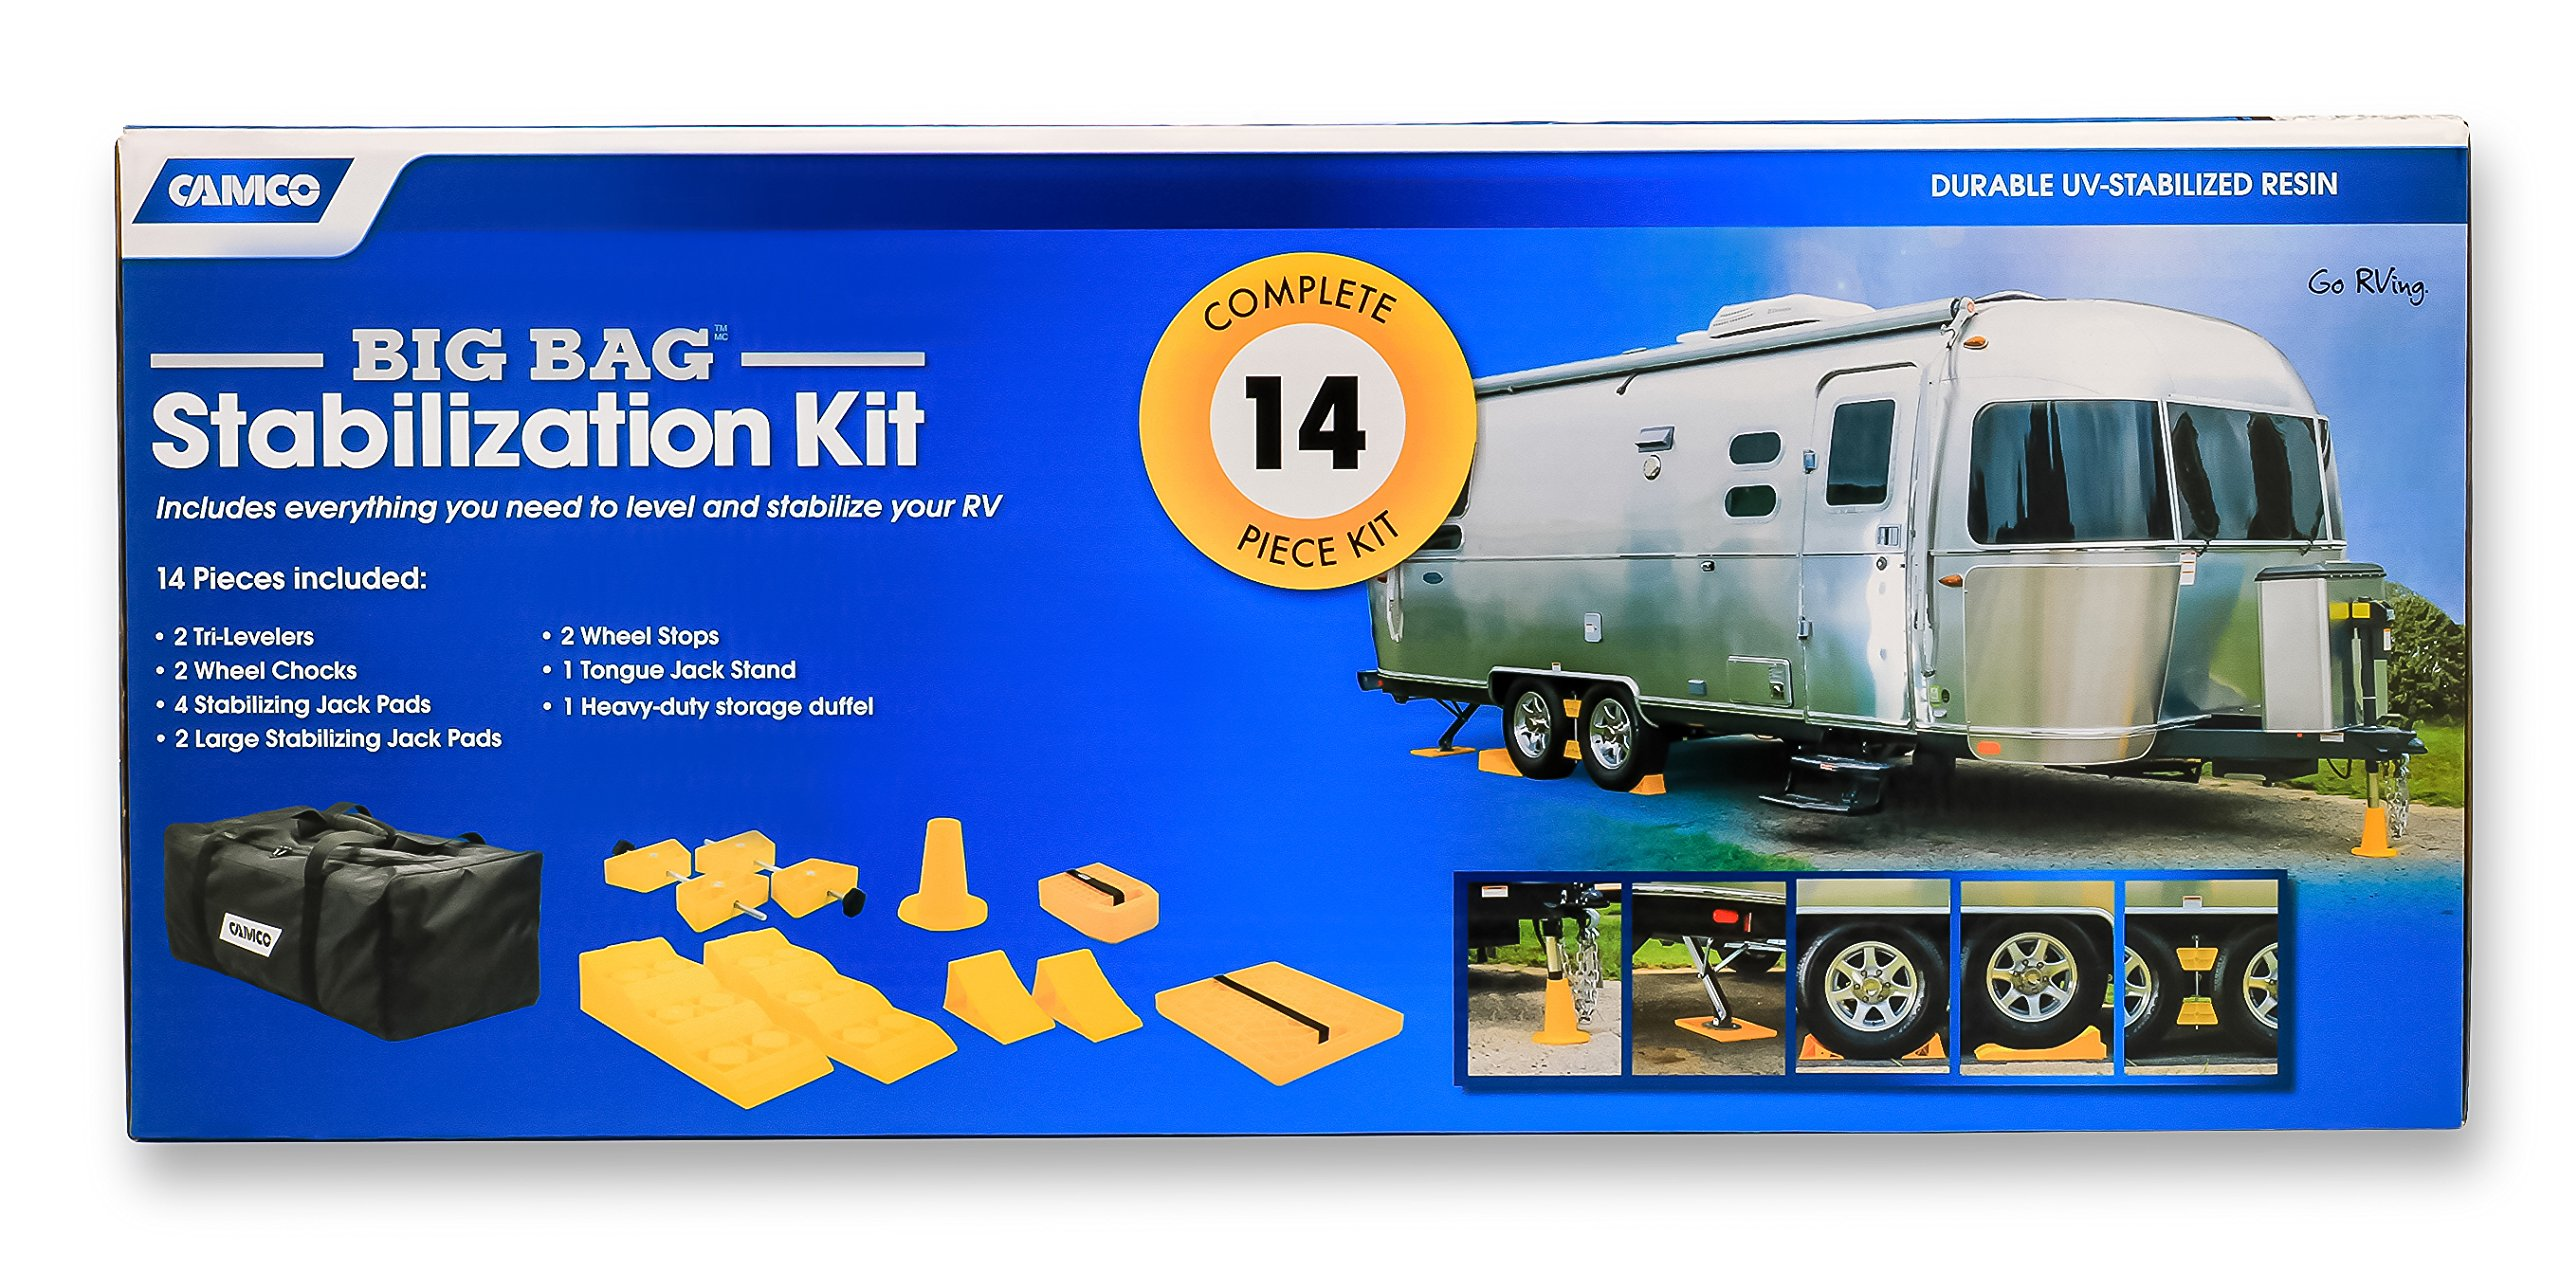 Camco Big Bag Stabilization Kit - Includes Everything You Need to Level and Stabilize Your RV, Camper or Trailer | 14 Piece Complete  Kit with Heavy Duty Storage Duffel Bag - (44550) by Camco